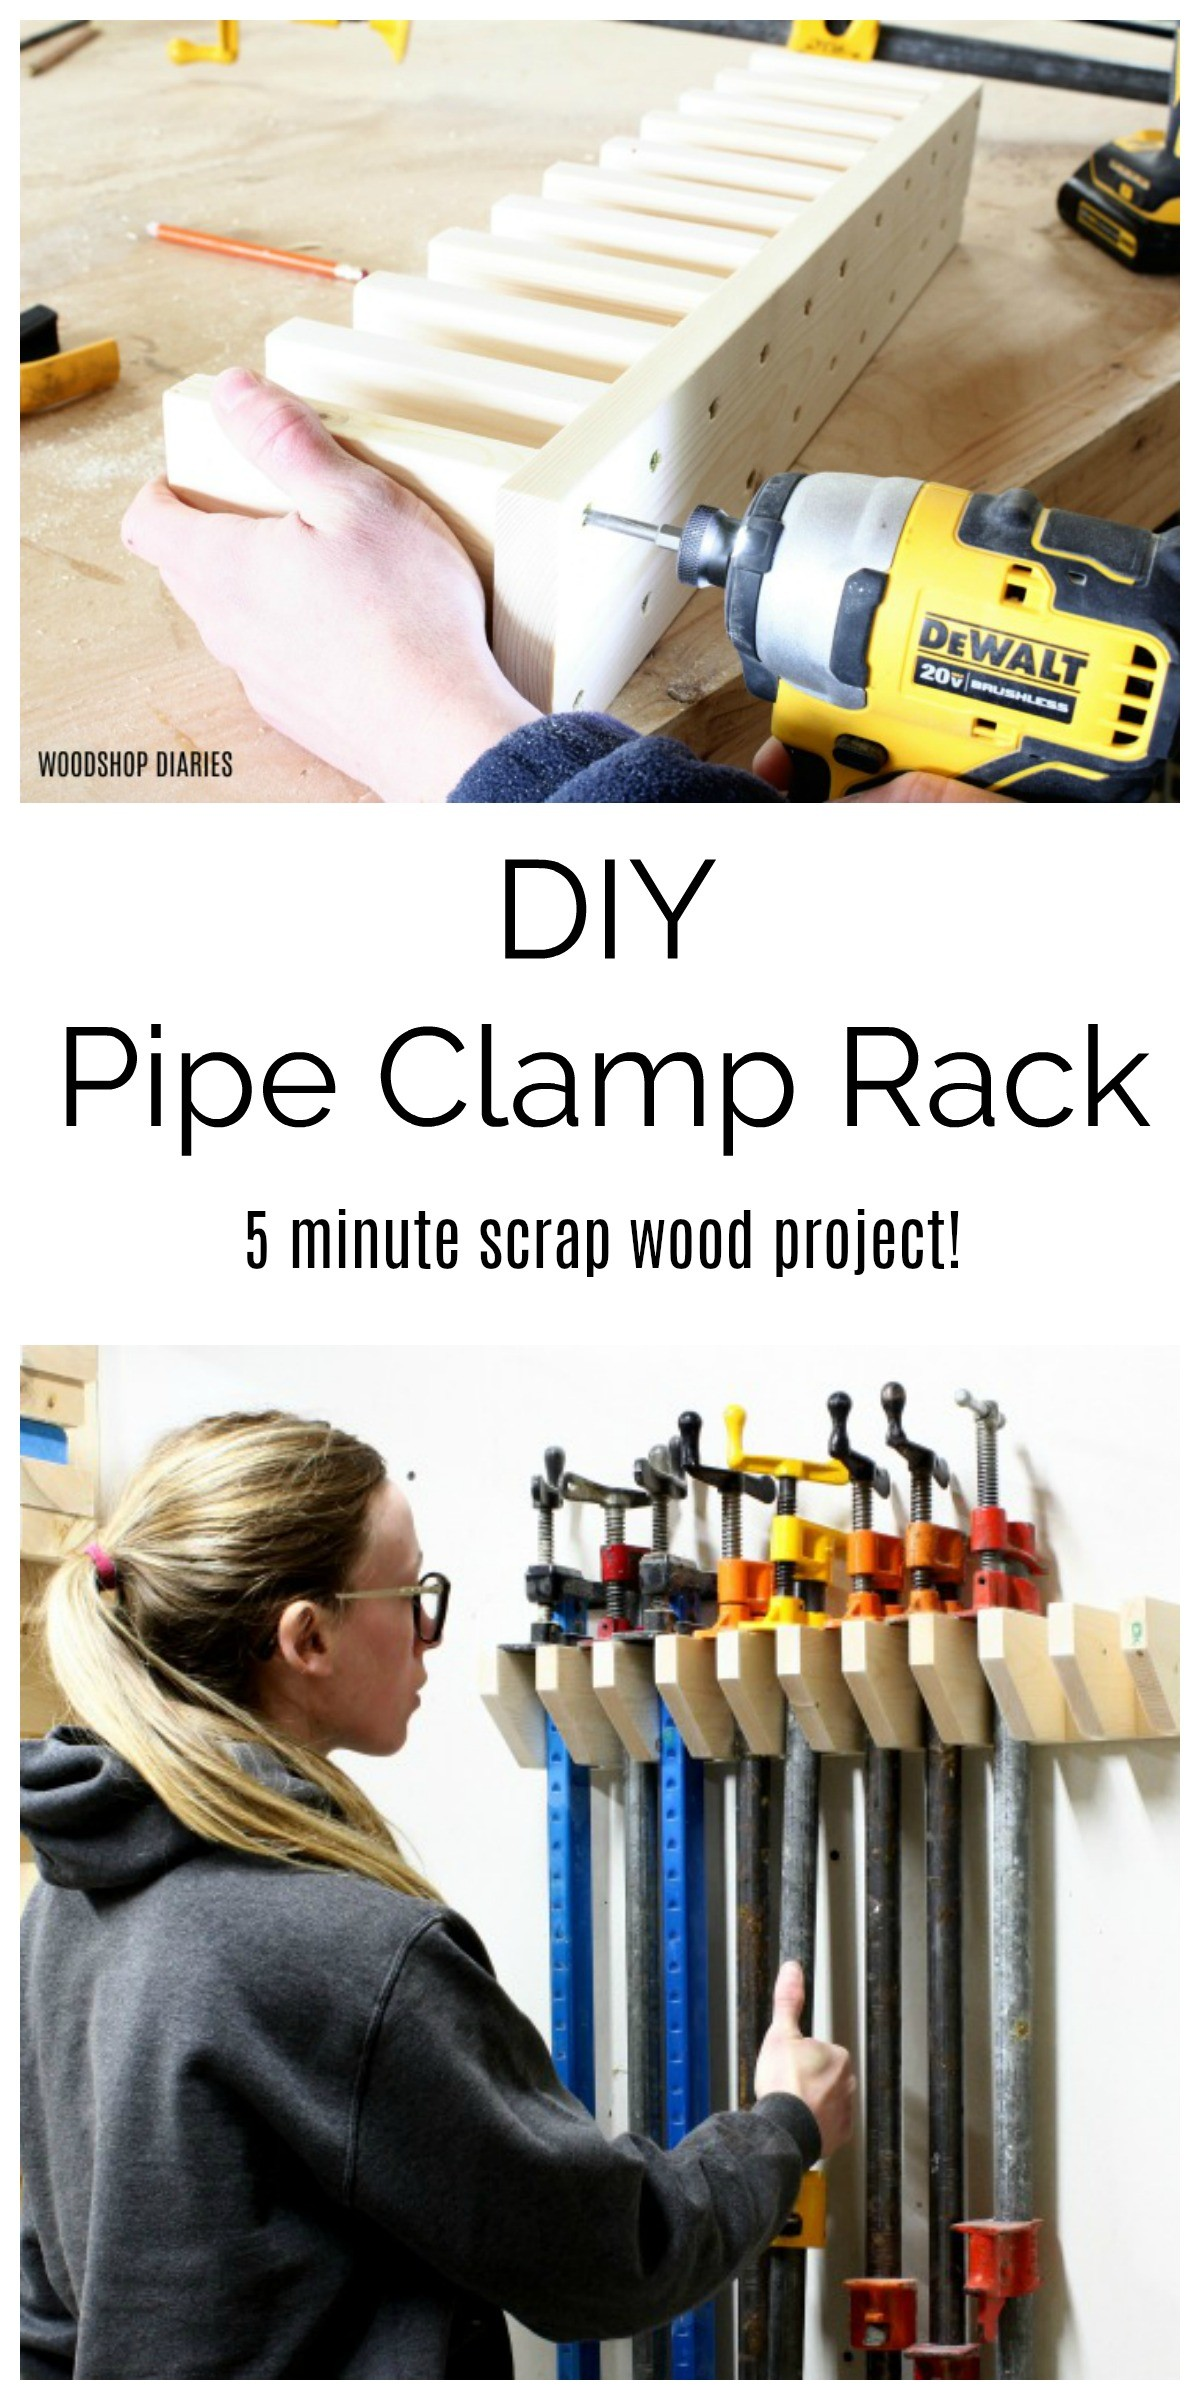 DIY Pipe Clamp Rack Collage Pinterest Image